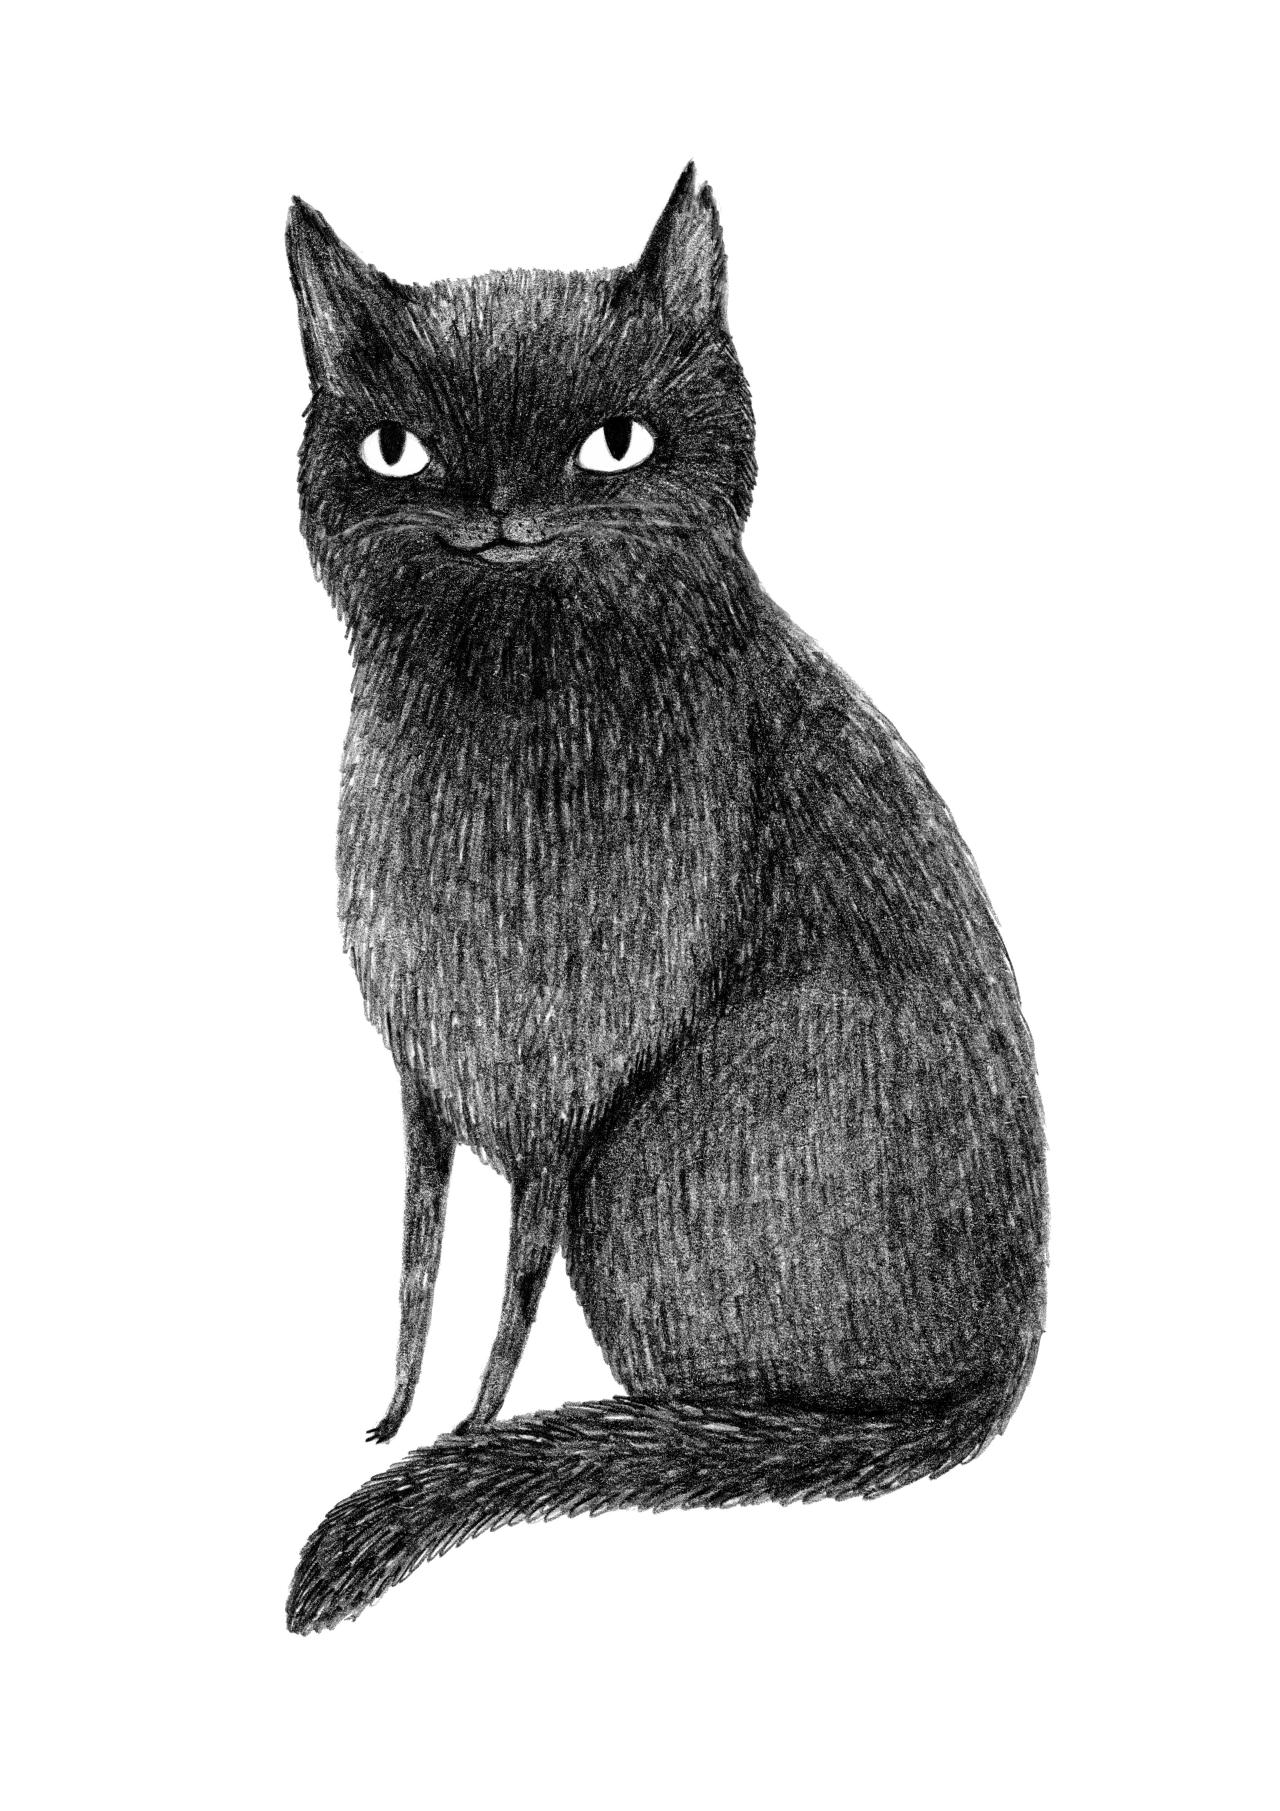 Line drawing of a black cat